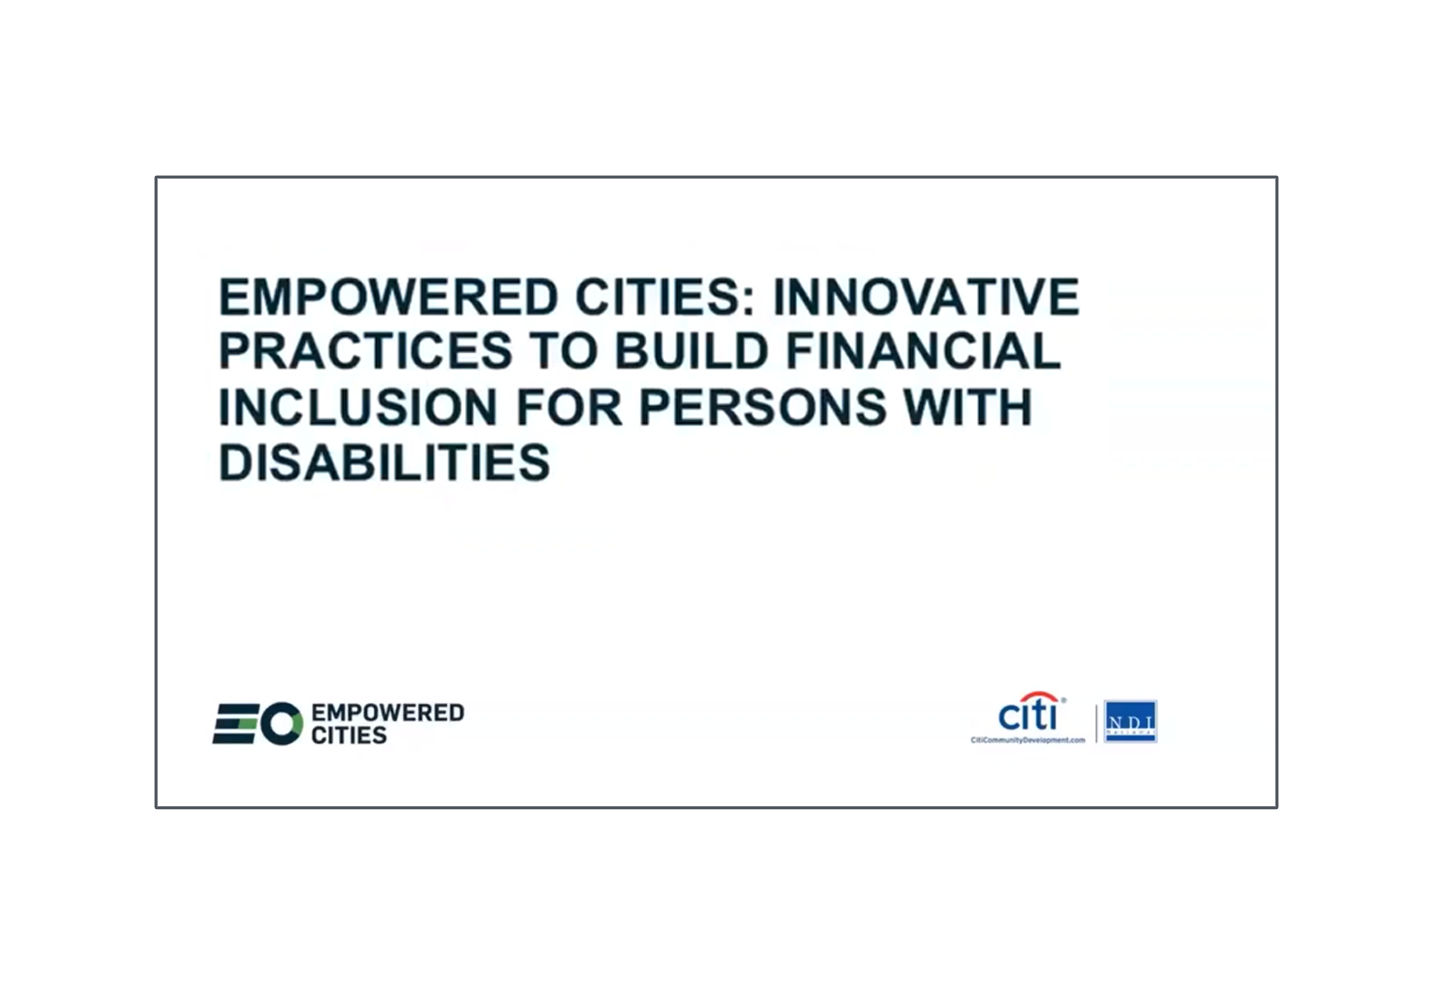 Innovative Practices to Build Financial Inclusion for Persons with Disabilities